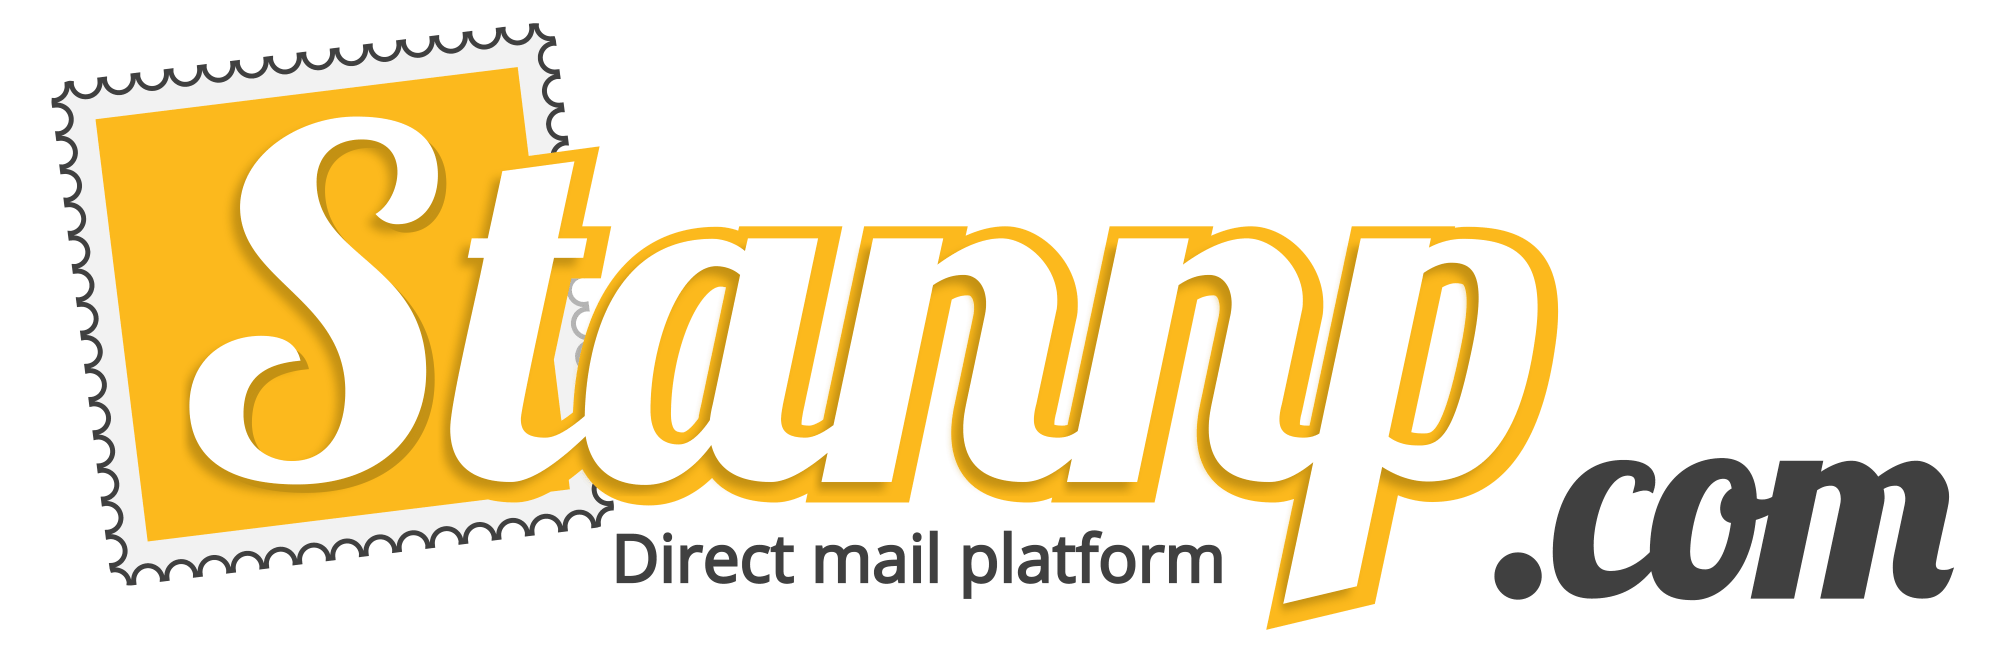 Stannp direct mail logo